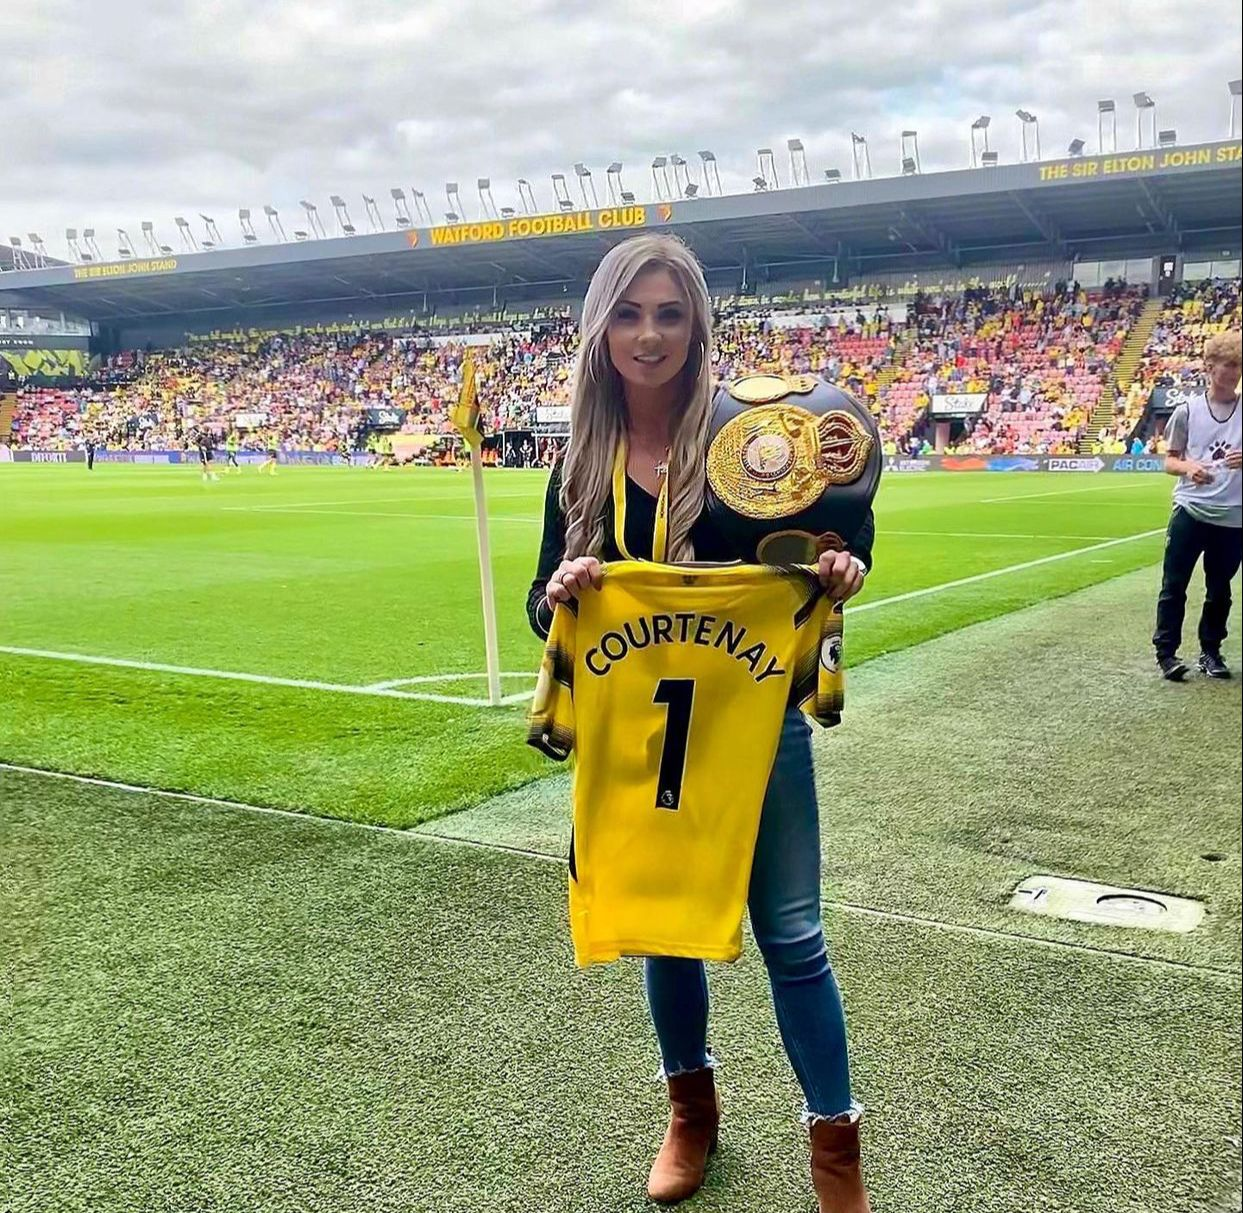 Shannon Courtenay was the guest of honor at the fourth date of the Premier League